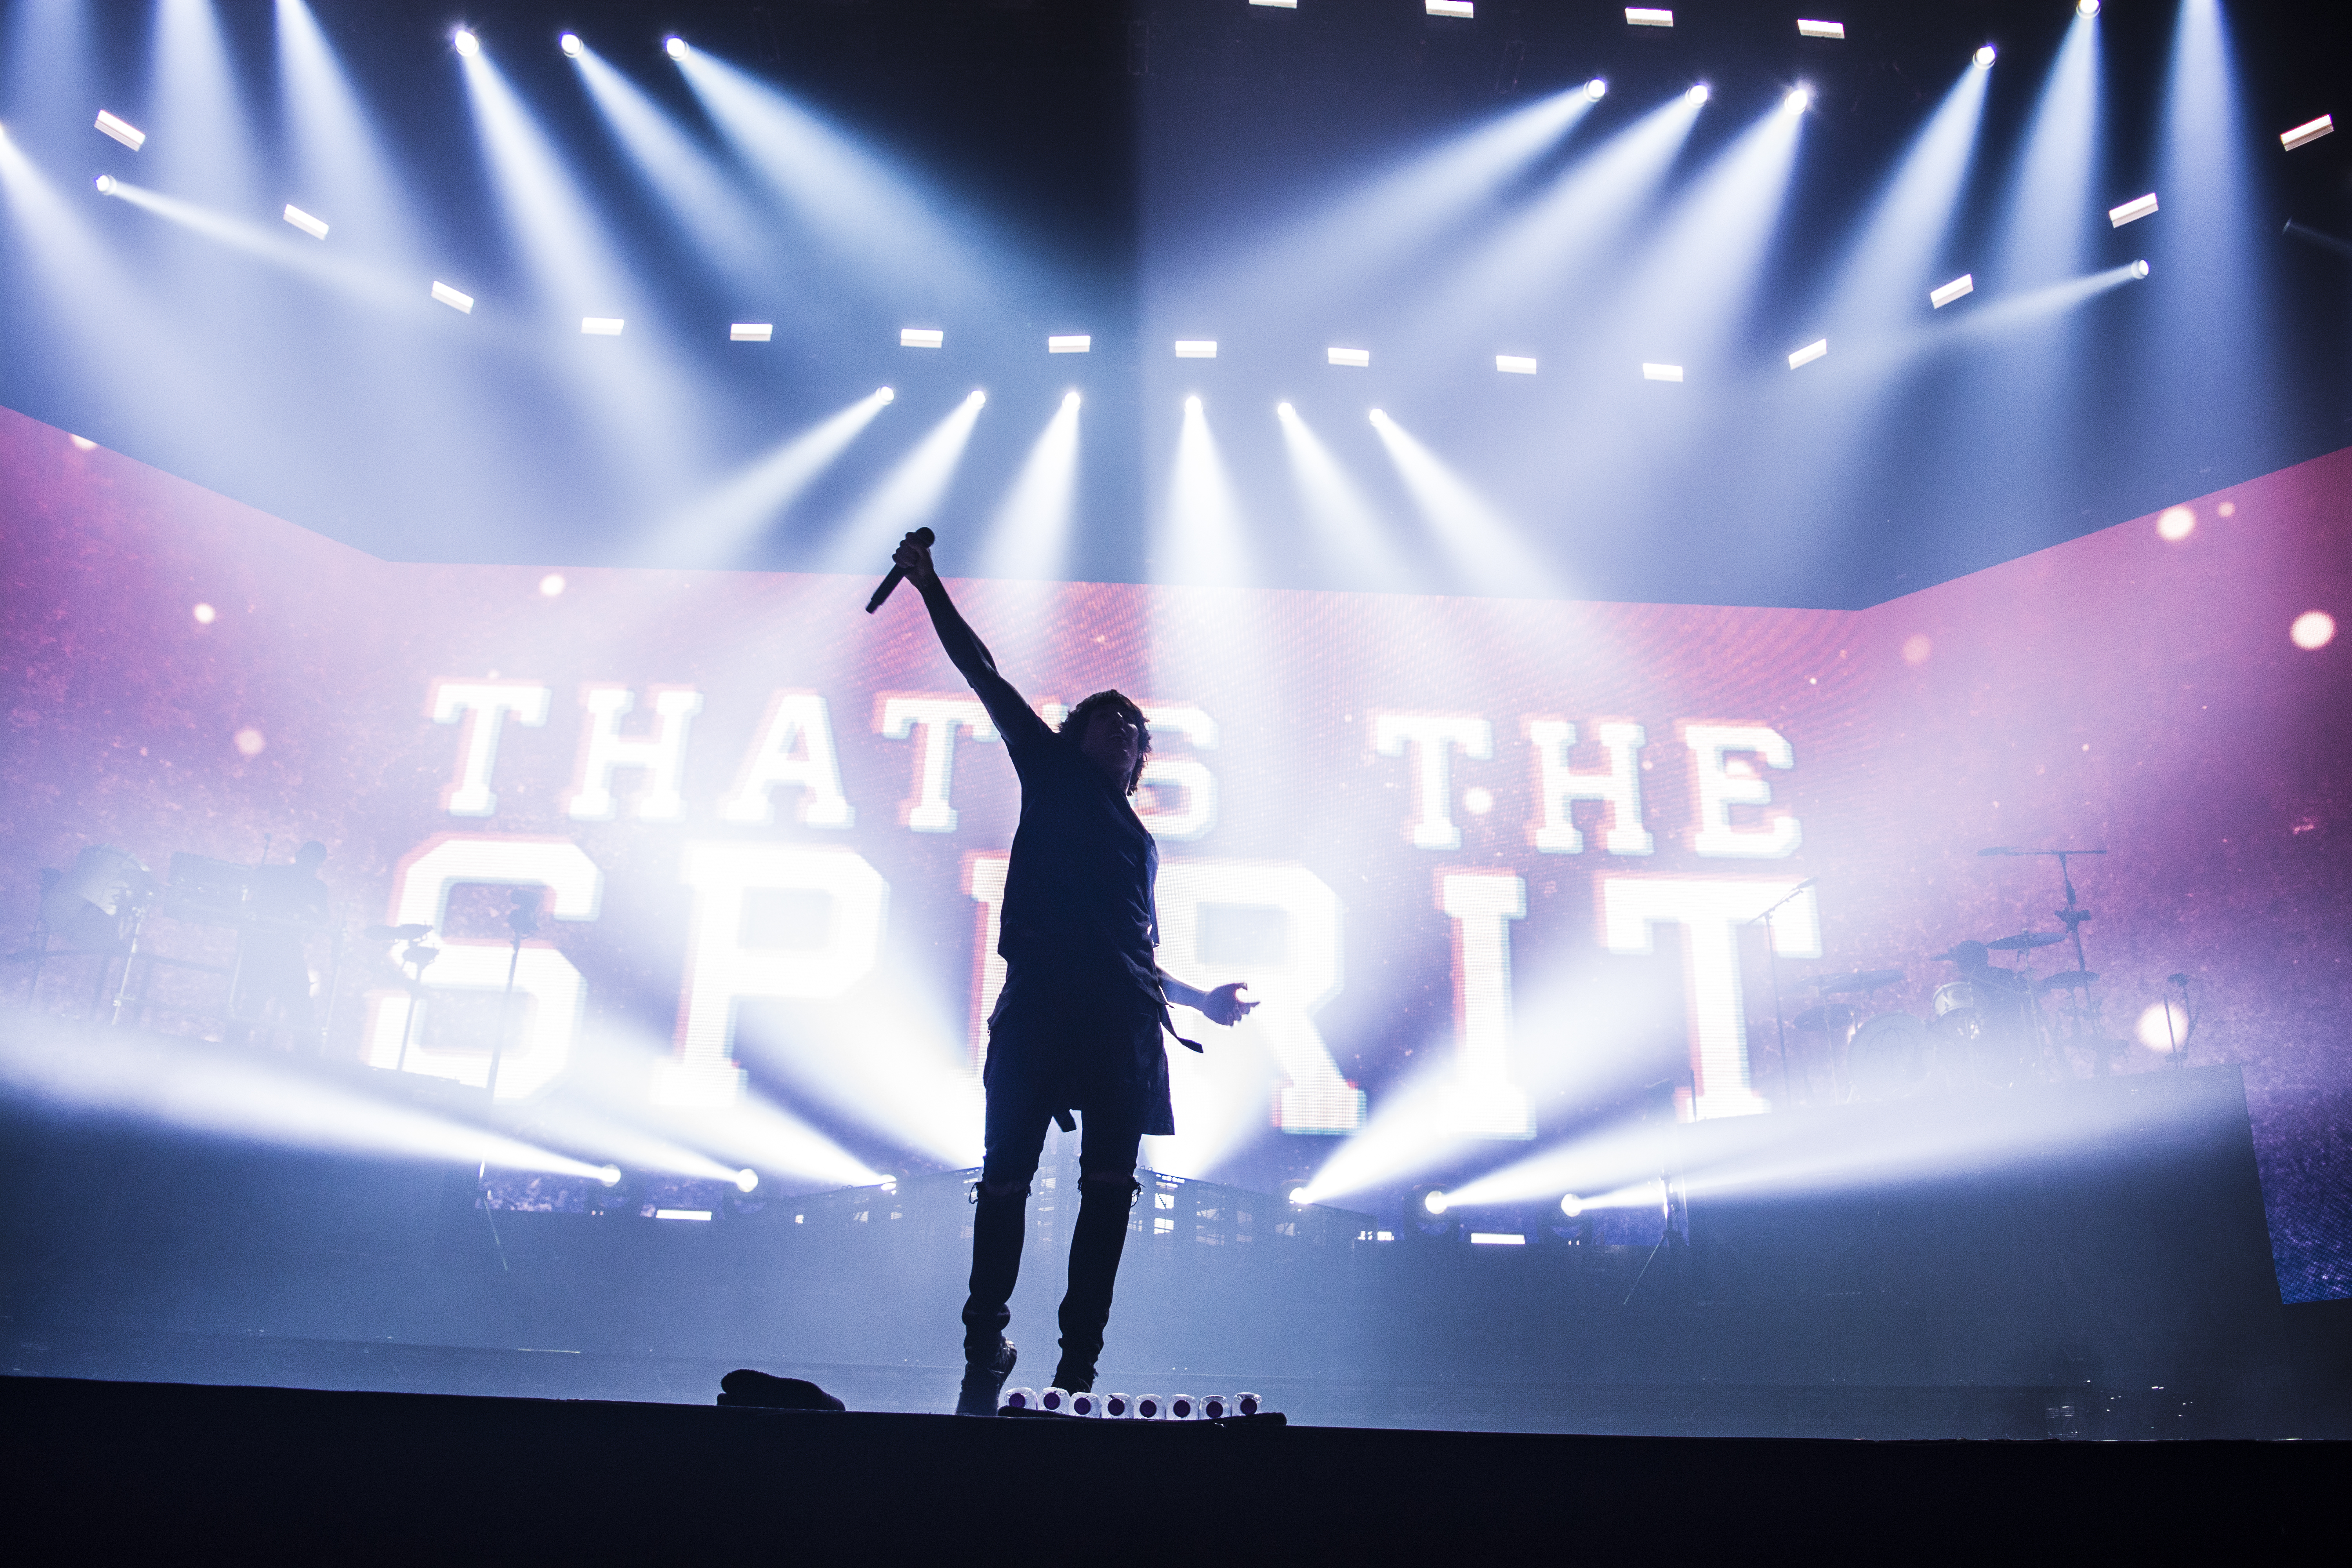 Bring me the horizon in nottingham arena LS-Live